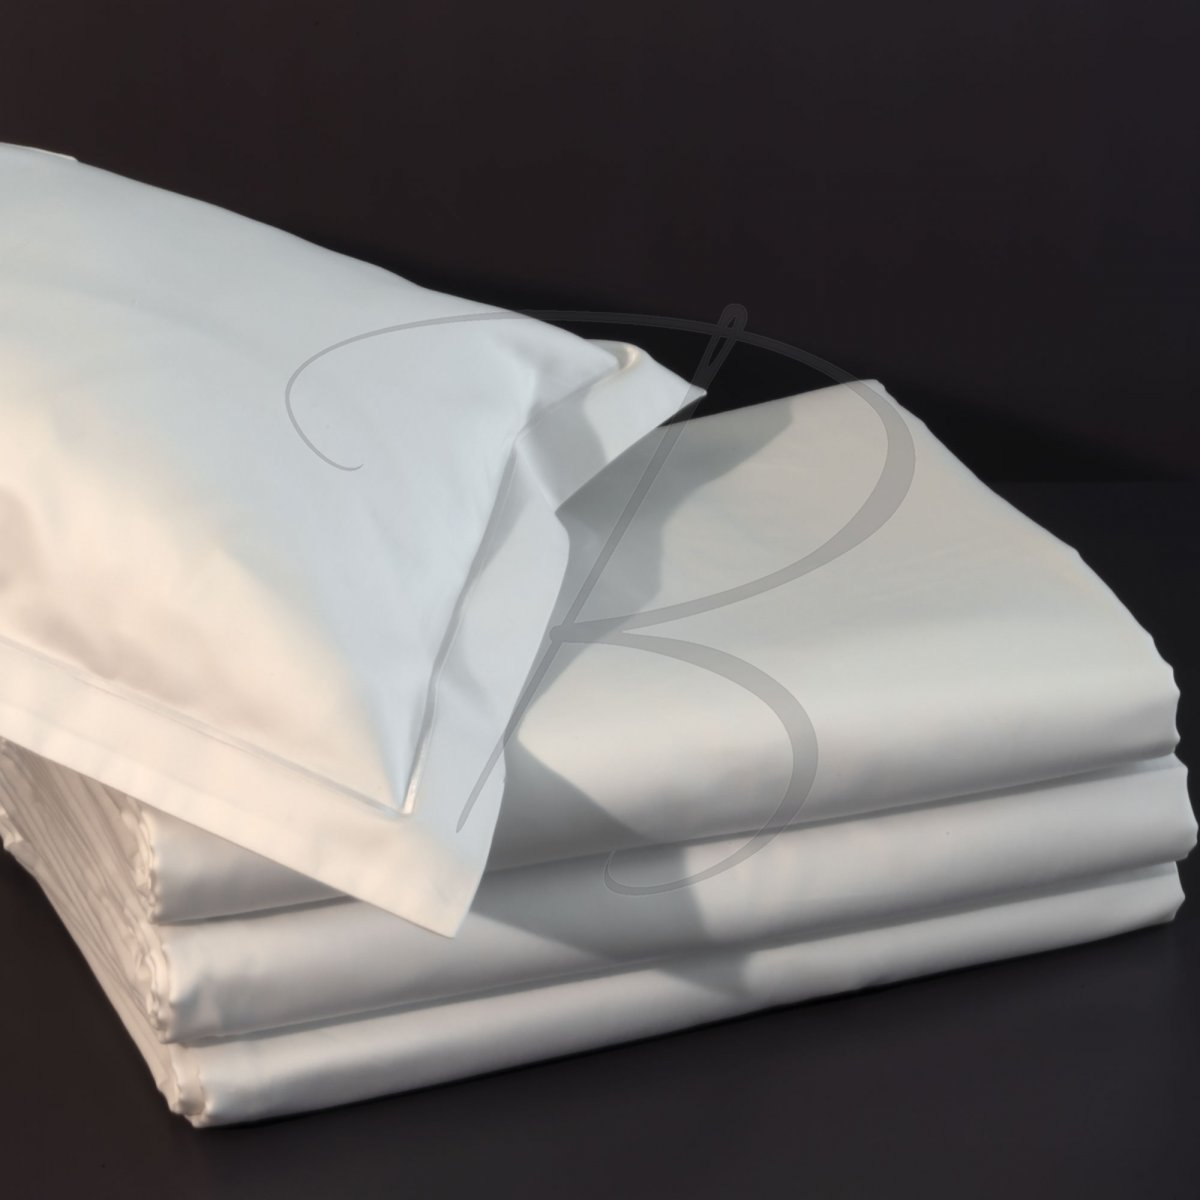 Pillowcase cotton 400 - 45 x 70 - 140g/m²